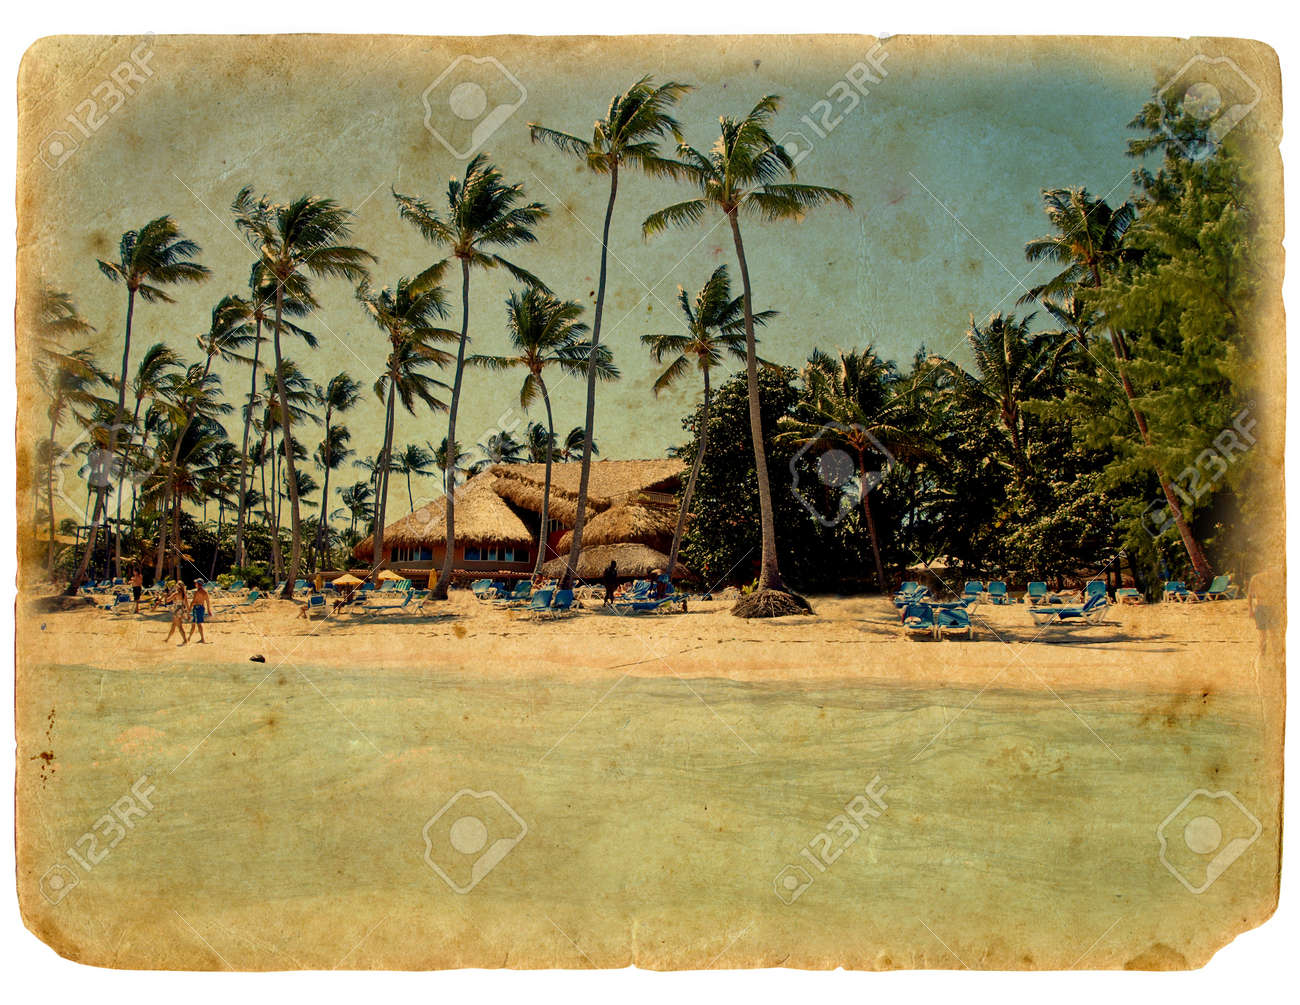 rest on the beach, lounge chairs, palm trees, the bungalows. The postcard, in a stylized grunge and retro style. Isolated on white background Stock Photo - 11999284